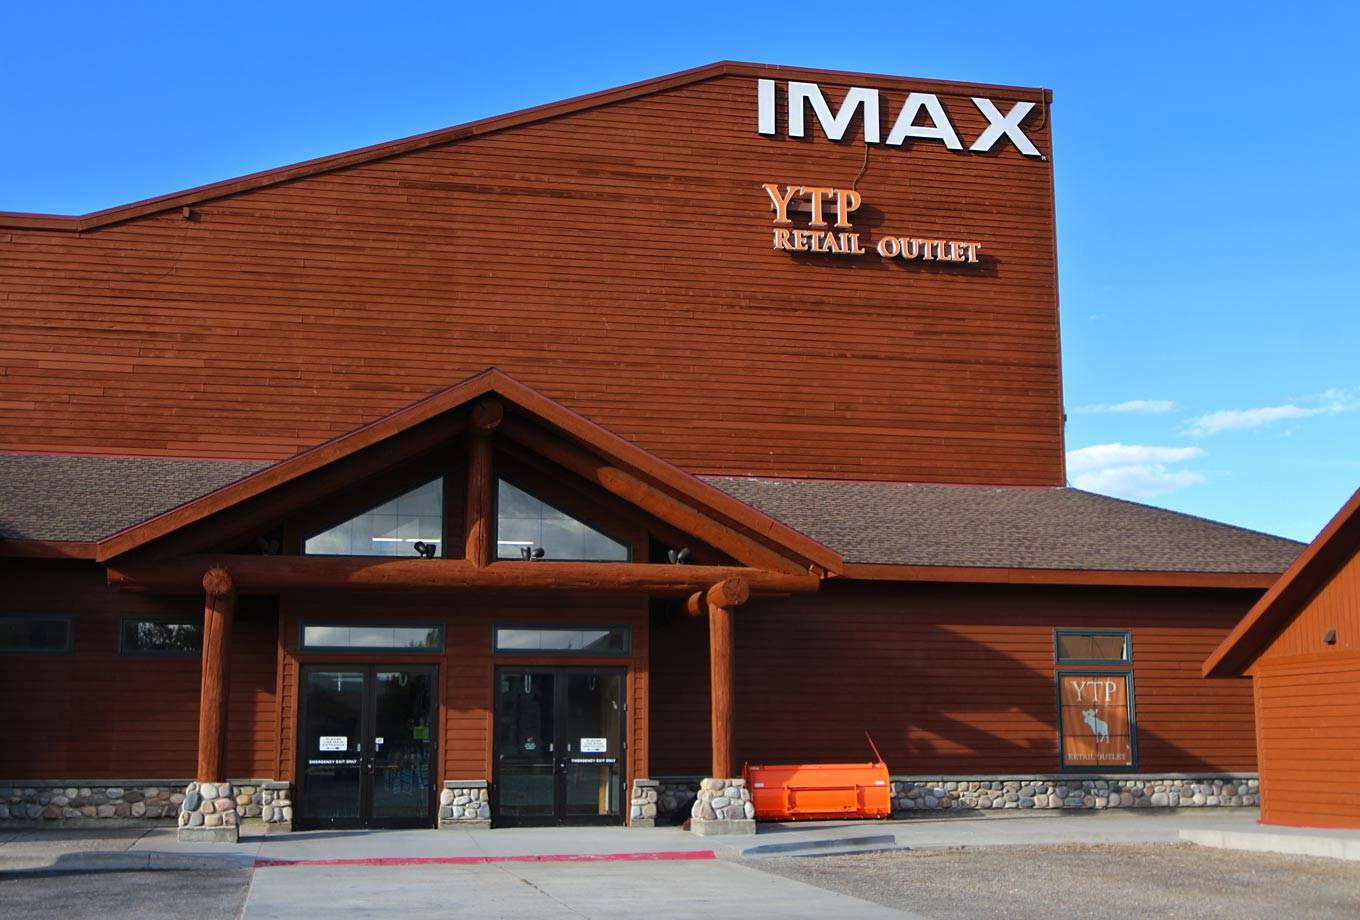 West Yellowstone Giant Screen IMAX Theatre